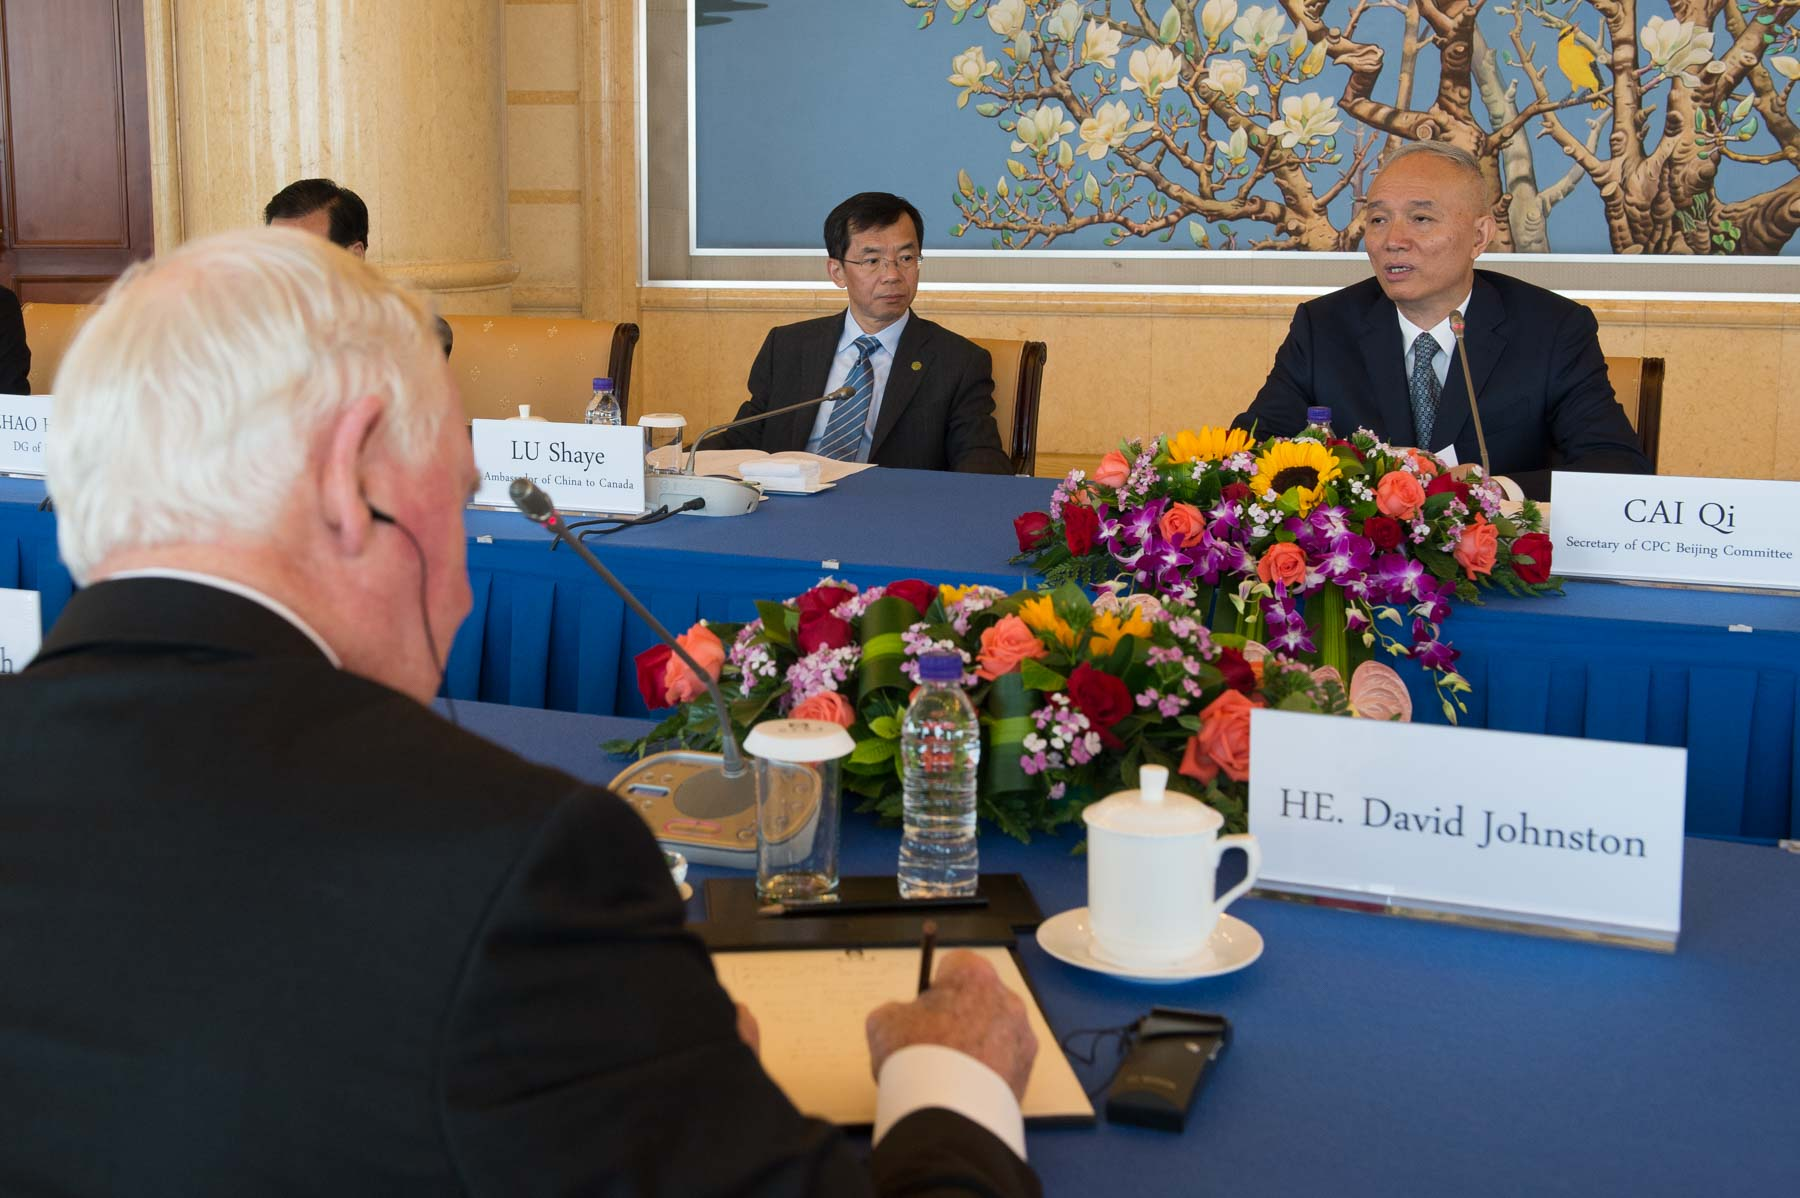 The Governor General and Mr. Cai Qi discussed topics of mutual interest.